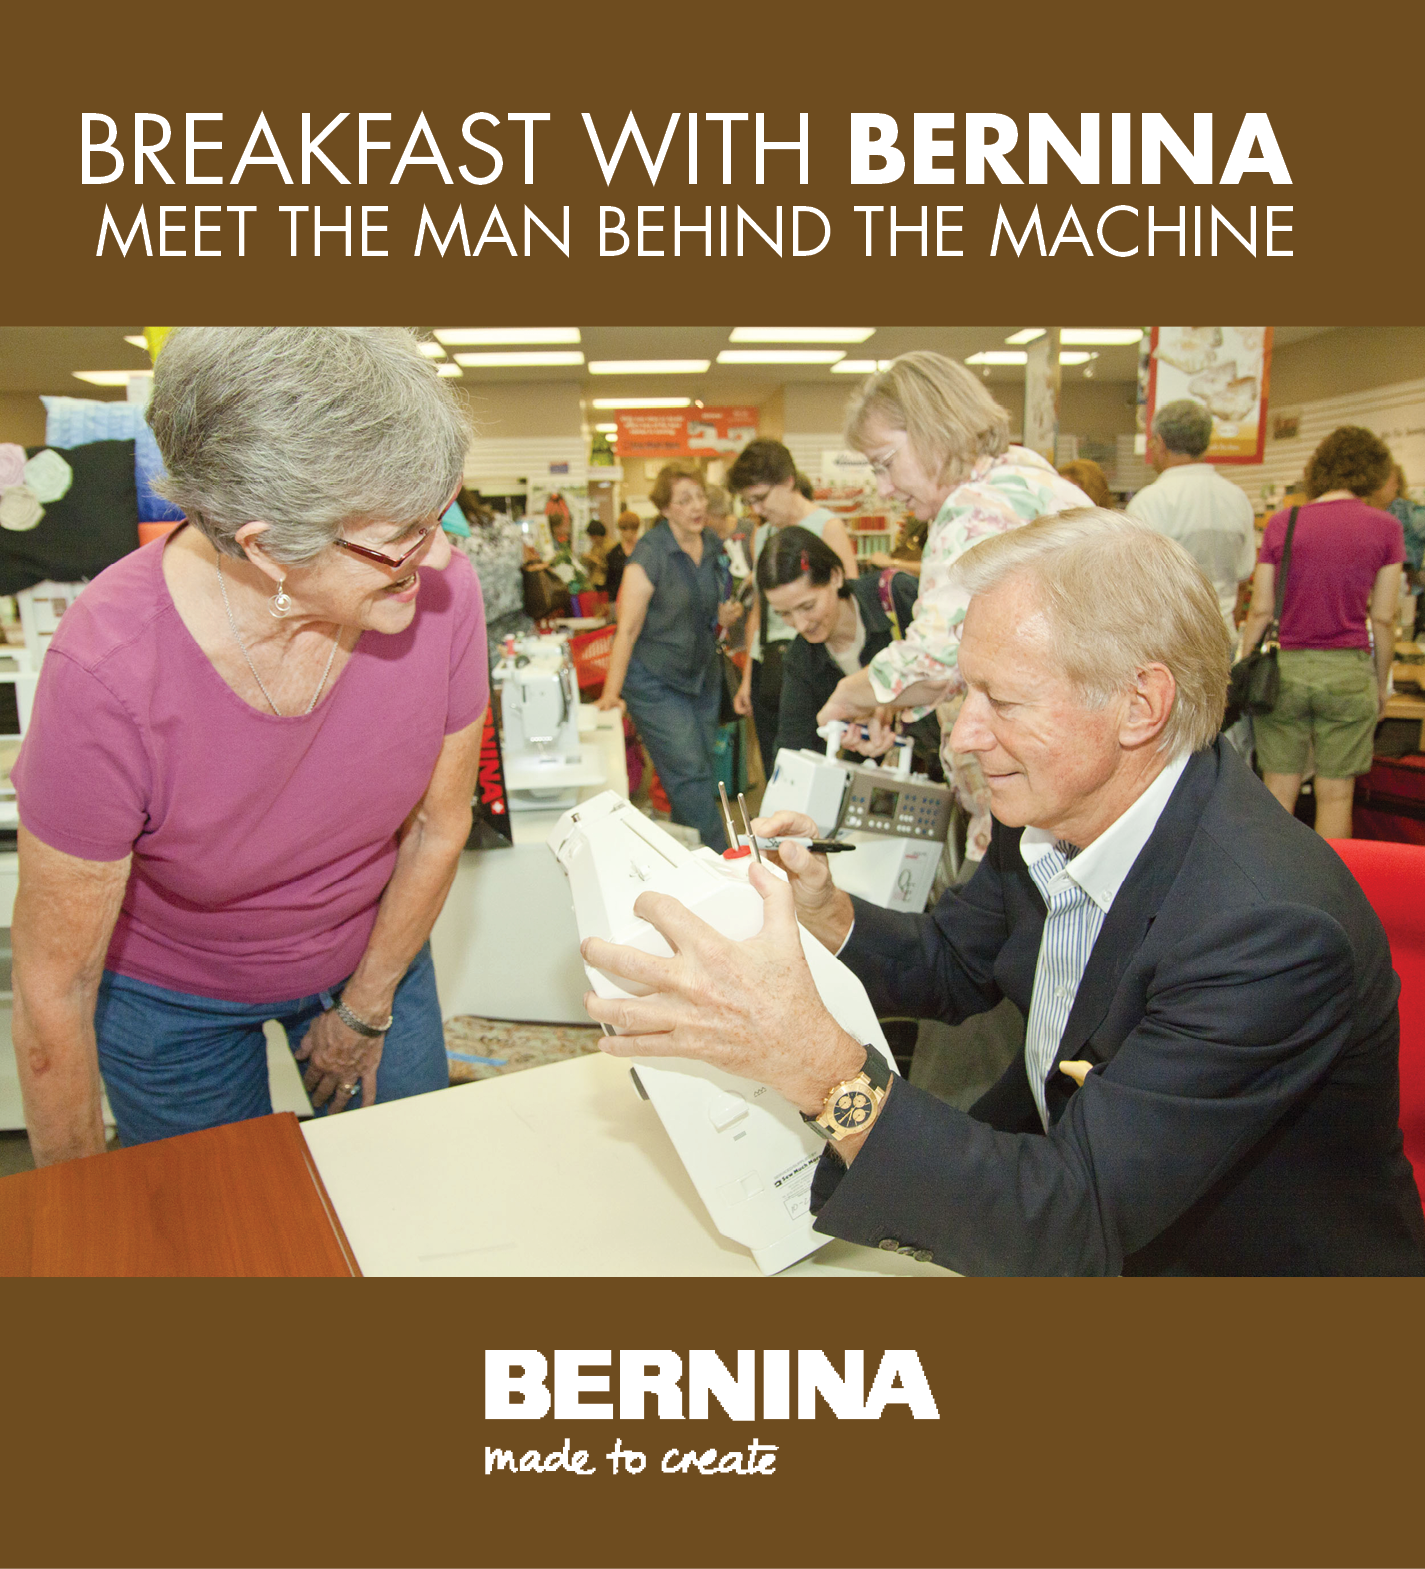 Breakfast with BERNINA